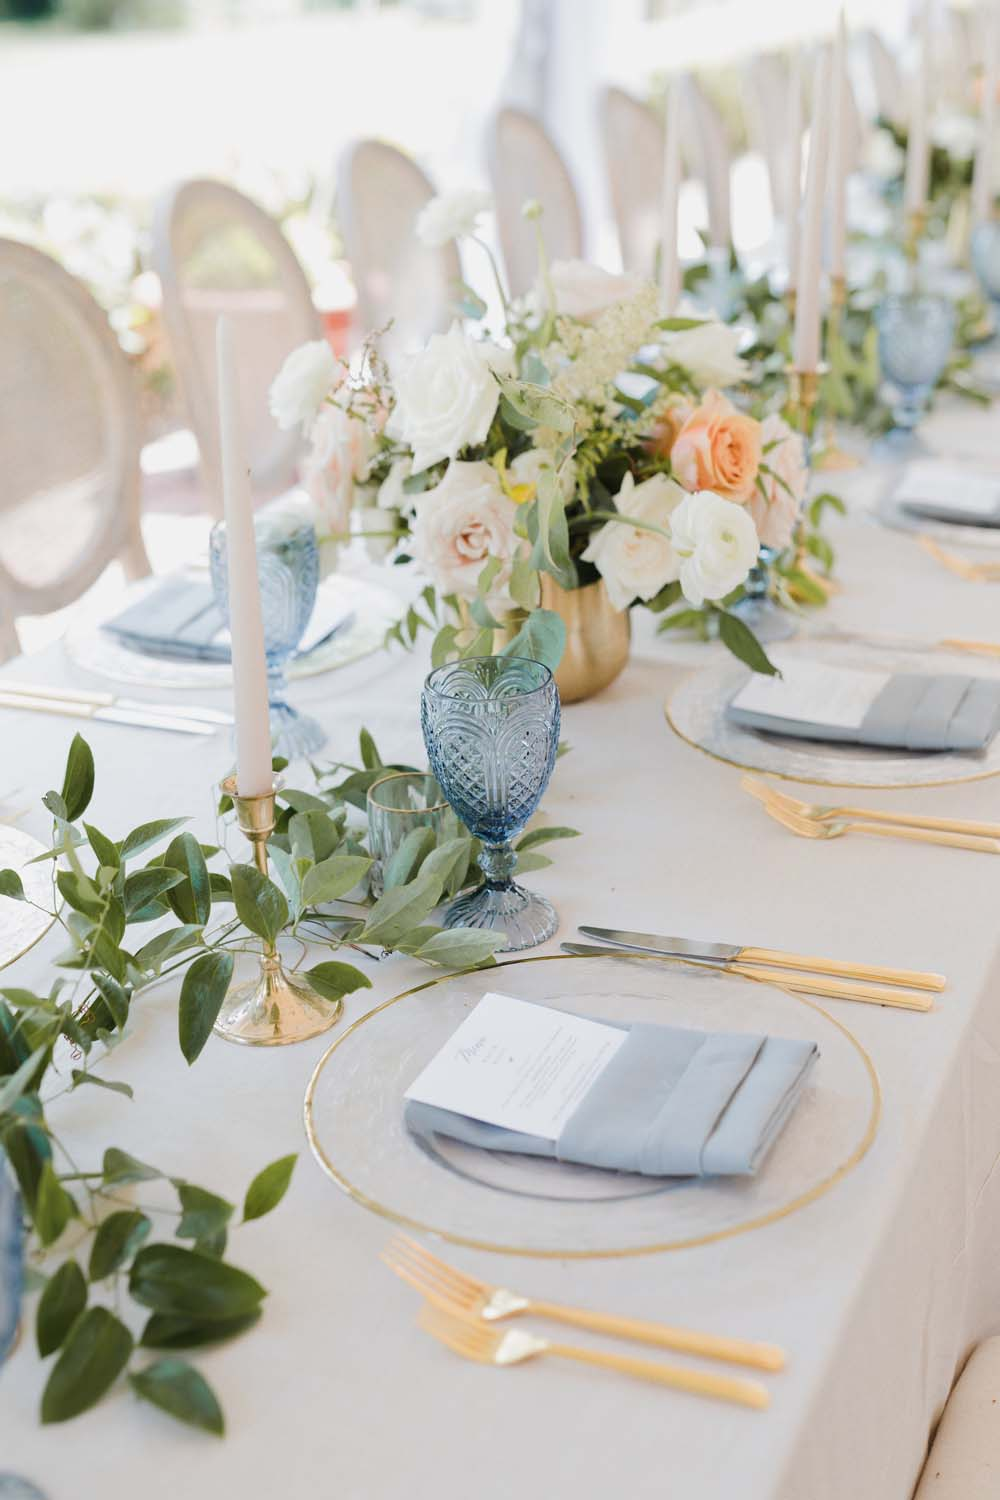 A Whimsical Wedding at Windmill Point, Ontario - Tablescape